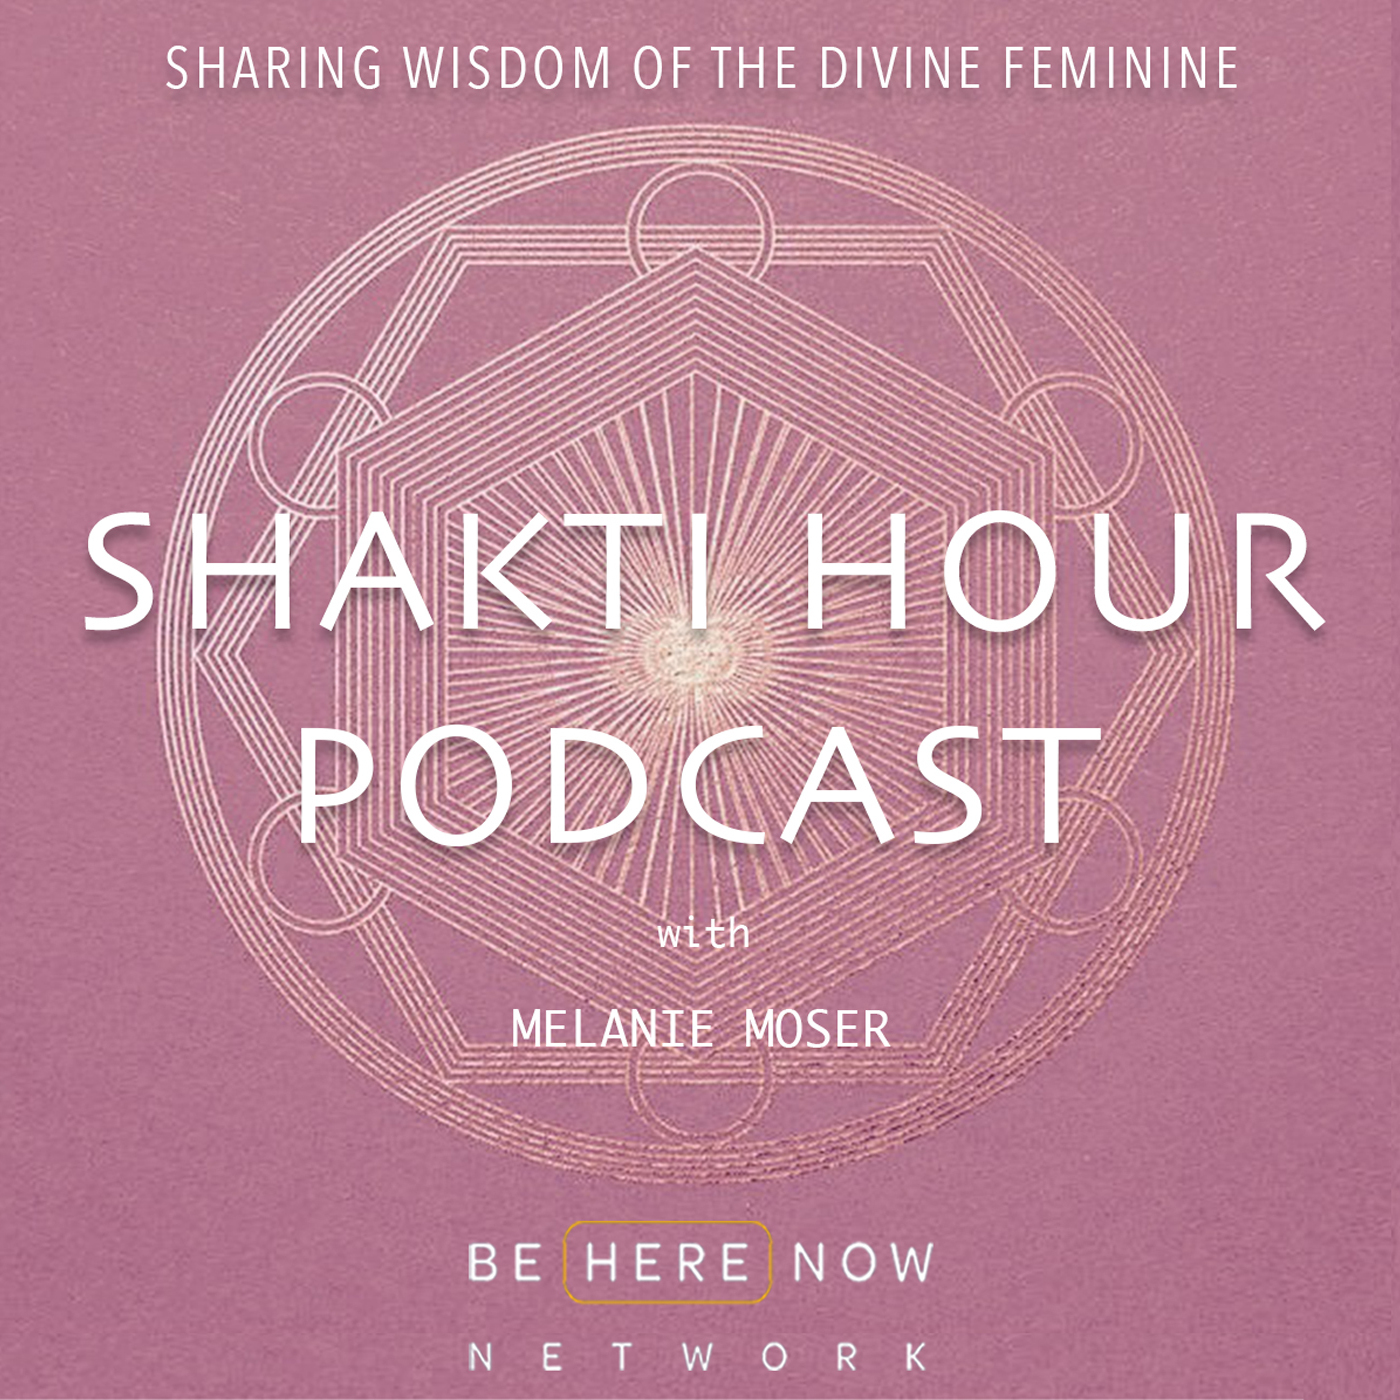 Sound Therapy w/ Sara Auster     Sara Auster, visits Shakti Hour to talk about listening as a meditative practice.  Sara talks about how she teaches people to use sound as a tool to support, access, and cultivate deep relaxation. Sara discusses the role of vibration and sound in mantra and thought. She talks about using external sound in meditative practice.  Sara emphasizes the importance of being persistent in exploring new disciplines, even if it doesn't work out at first.